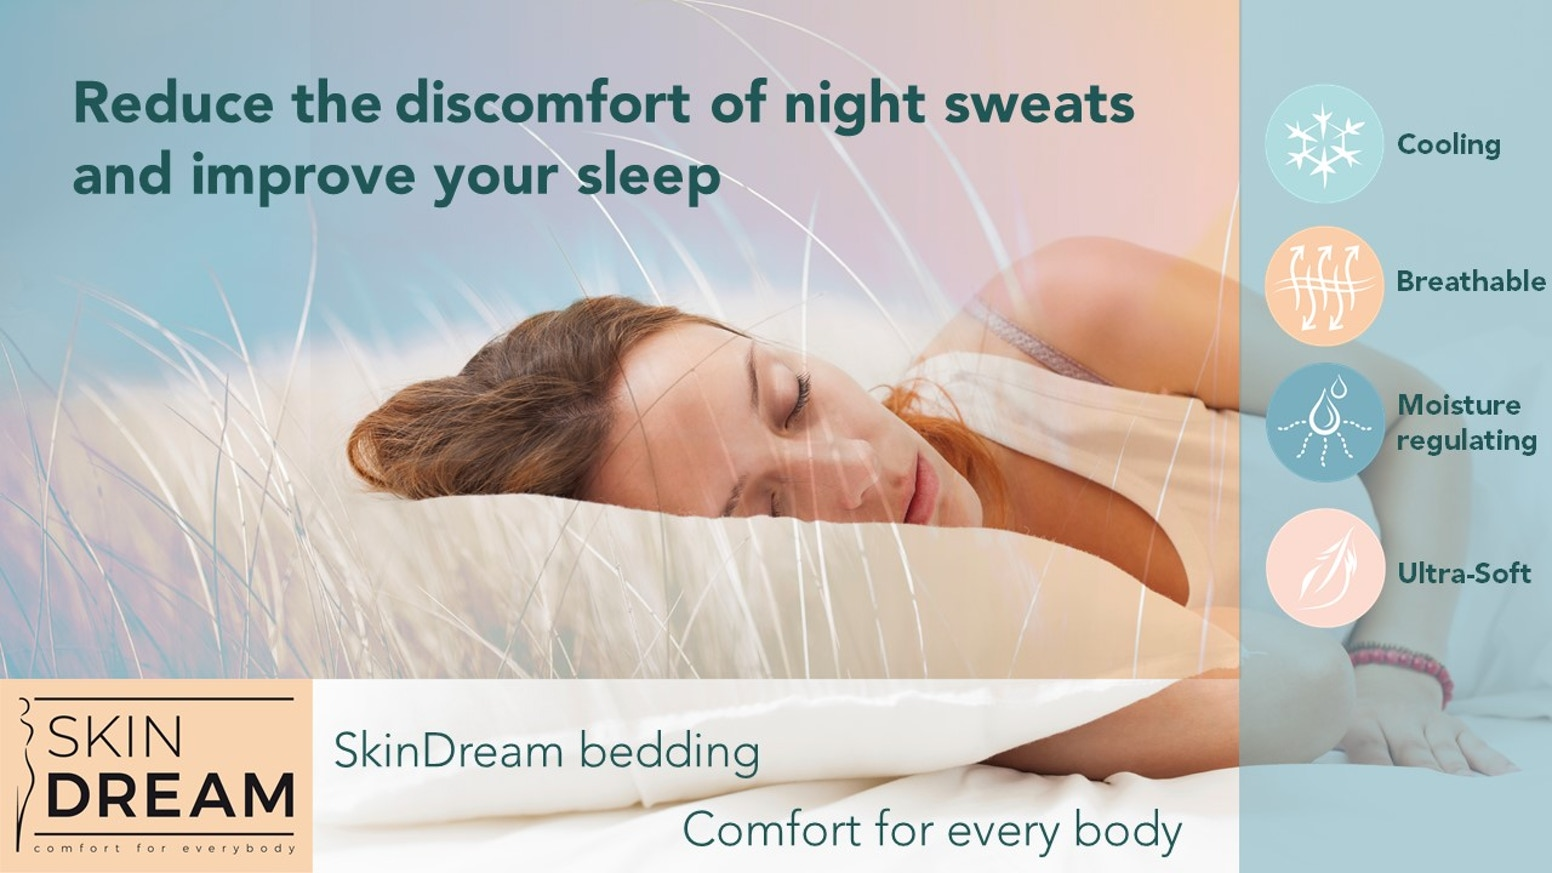 Reduce the discomfort of night sweats and improve your sleep. Keep your skin cool and dry with SkinDream bedding.